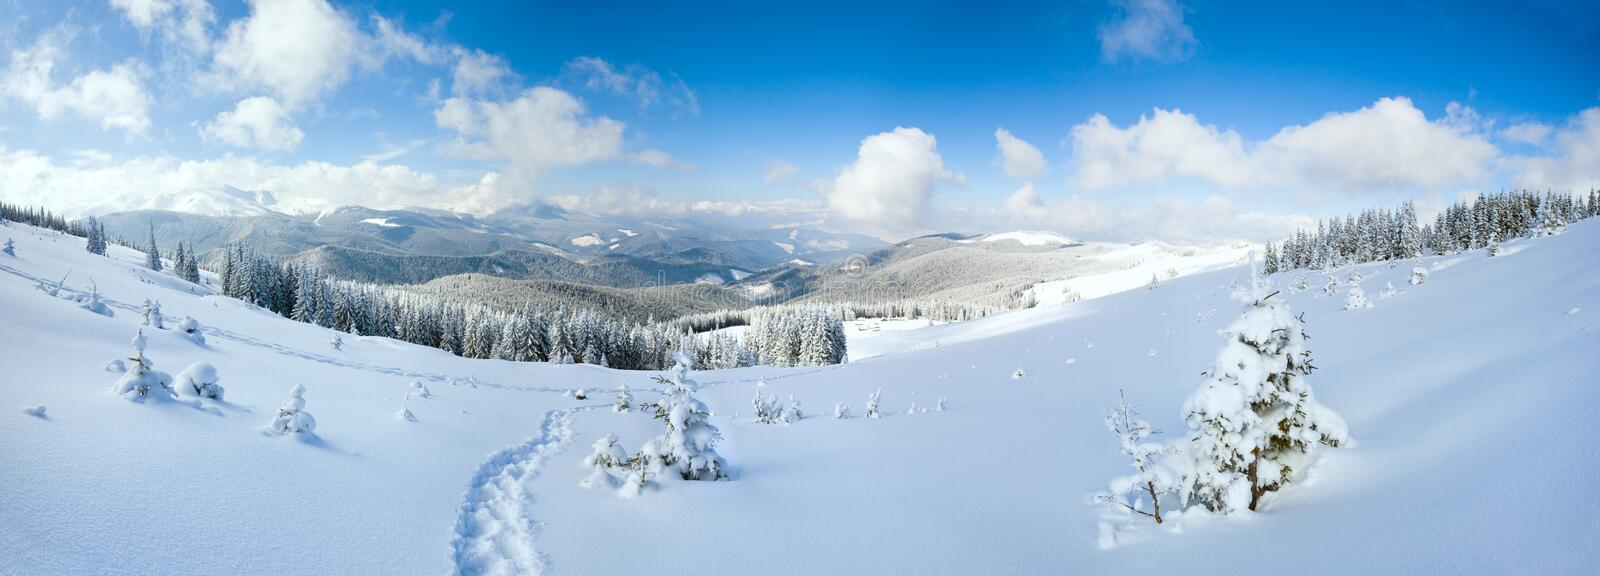 Winter mountain landscape. Winter calm mountain landscape with fir forest and sheds group on slope (Carpathian Mountains, Ukraine). Three shots stitch image stock photos